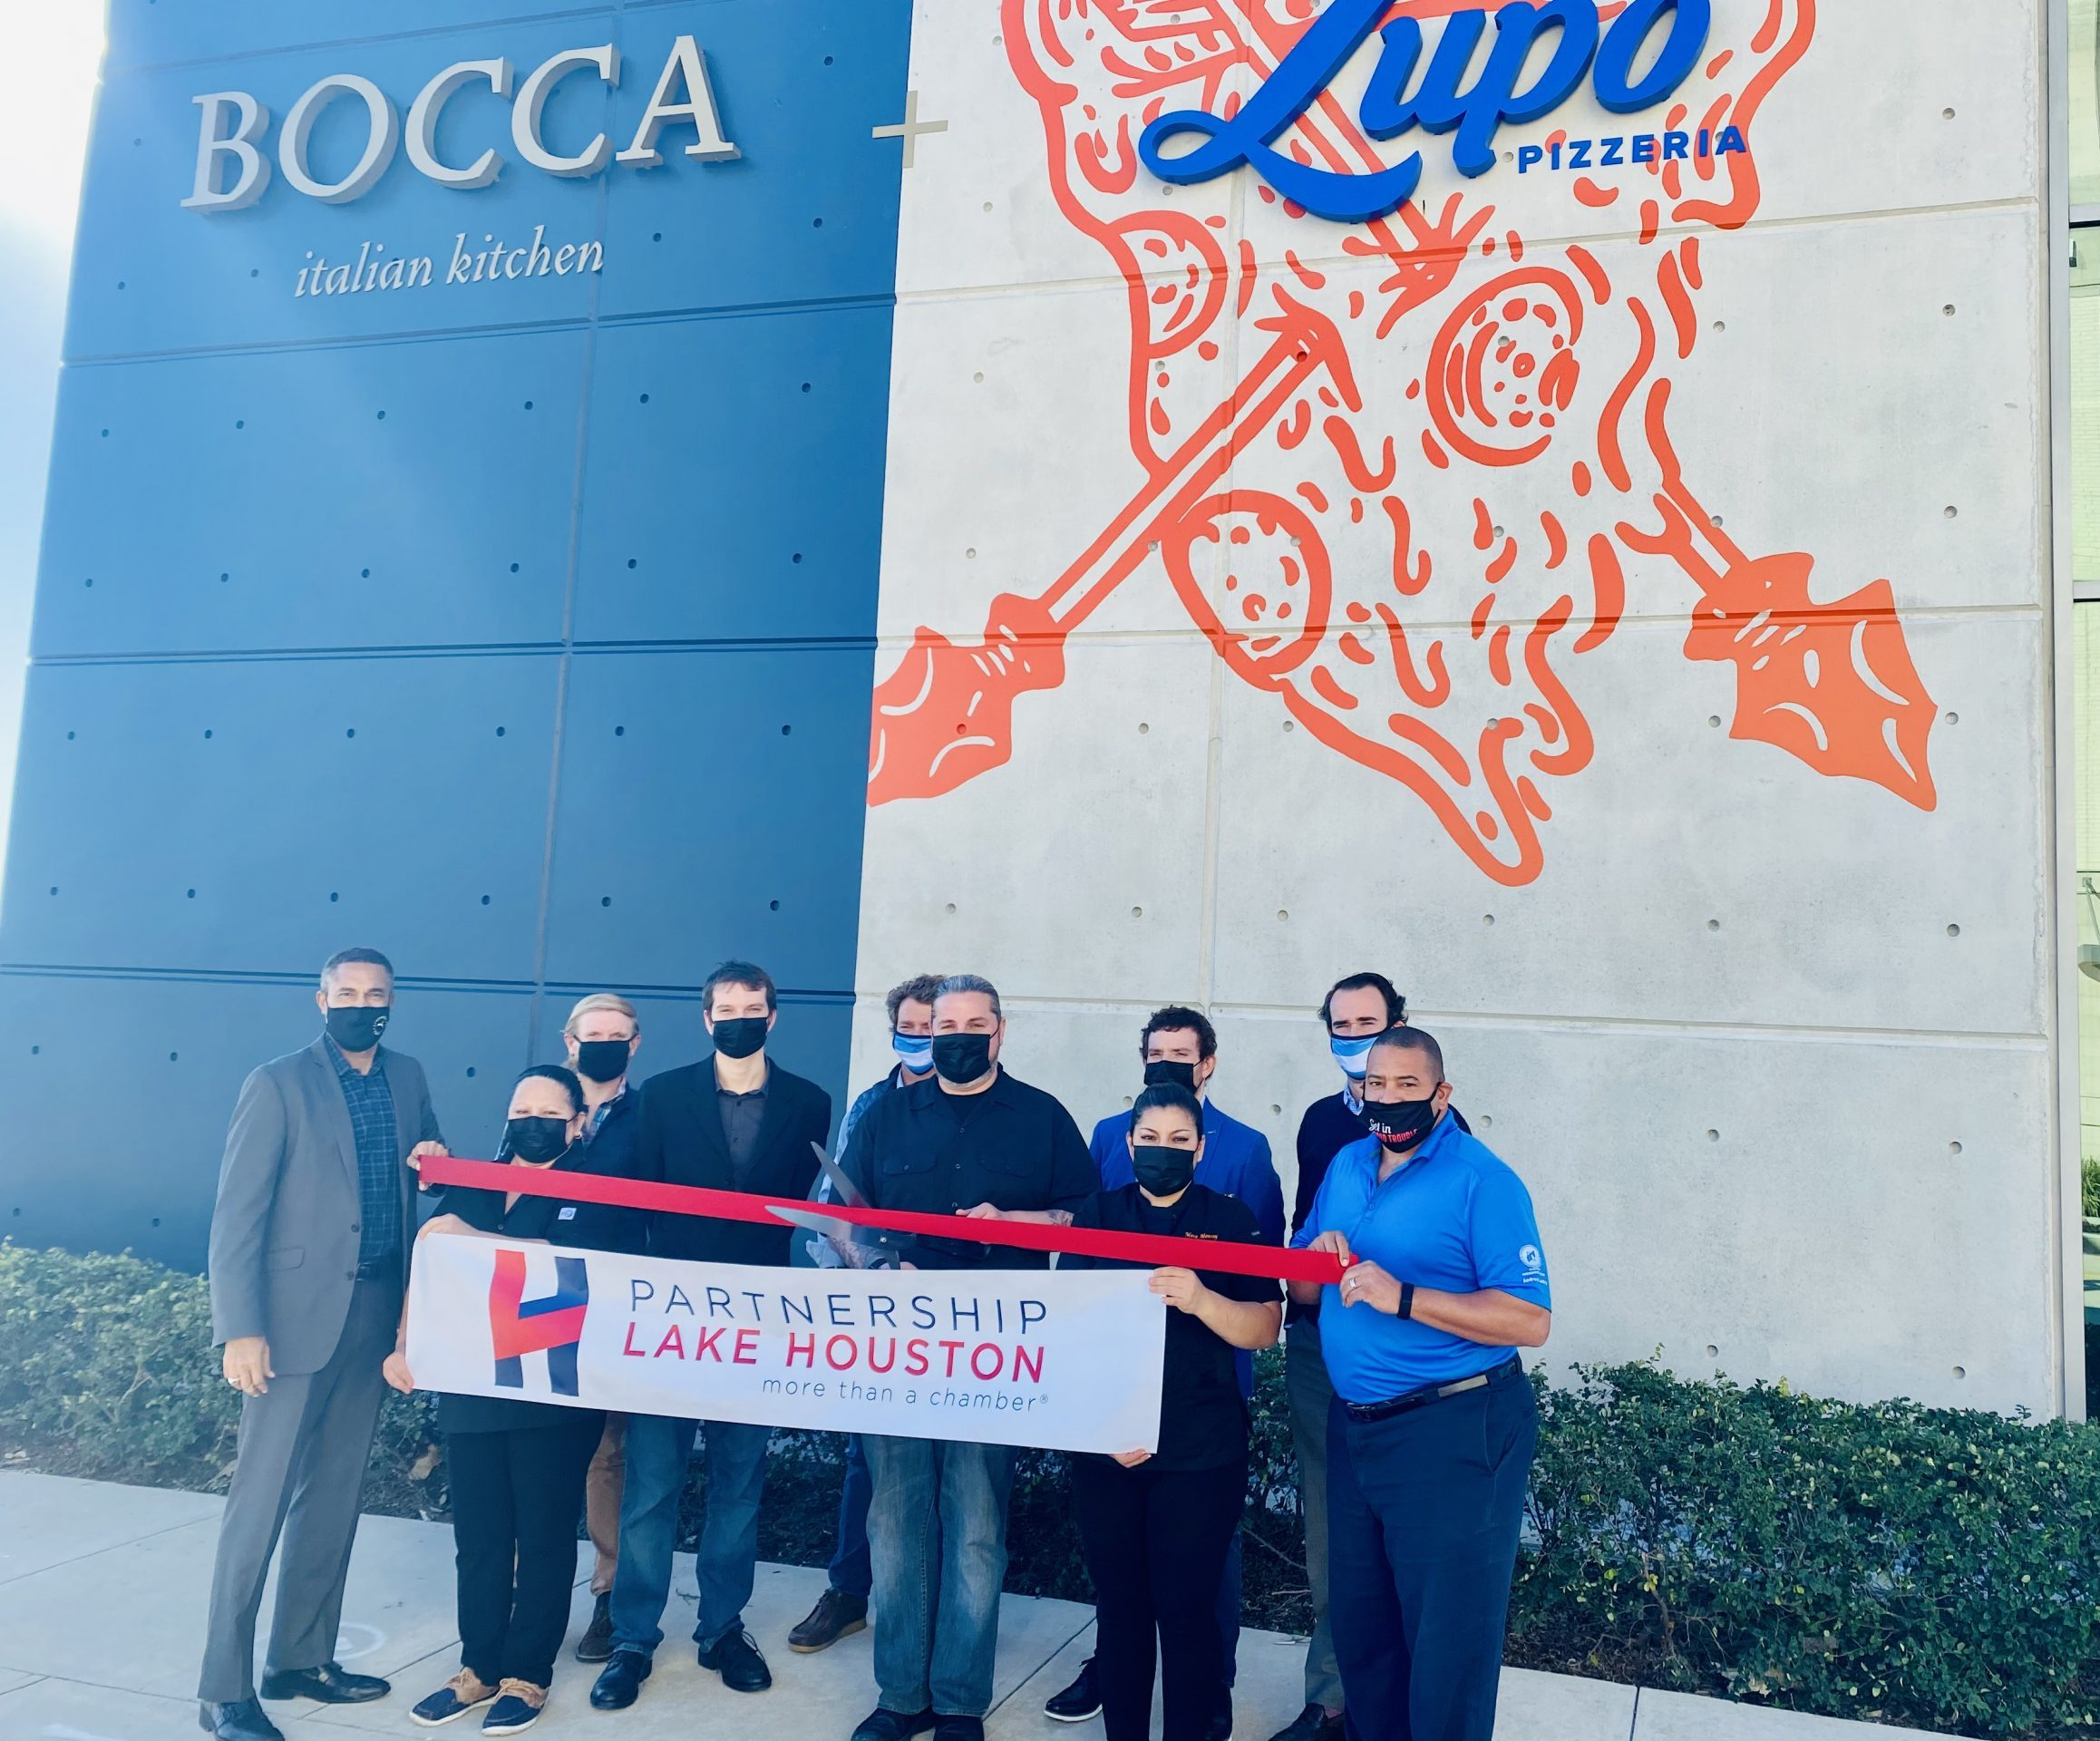 Chef Justin Turner, Director of Culinary Hospitality at McCord Development's Gastropub Productions poses with colleges, investors and Partnership Lake Houston ambassadors at Bocca Italian Kitchen and Lupo Pizzeria grand opening and ribbon cutting